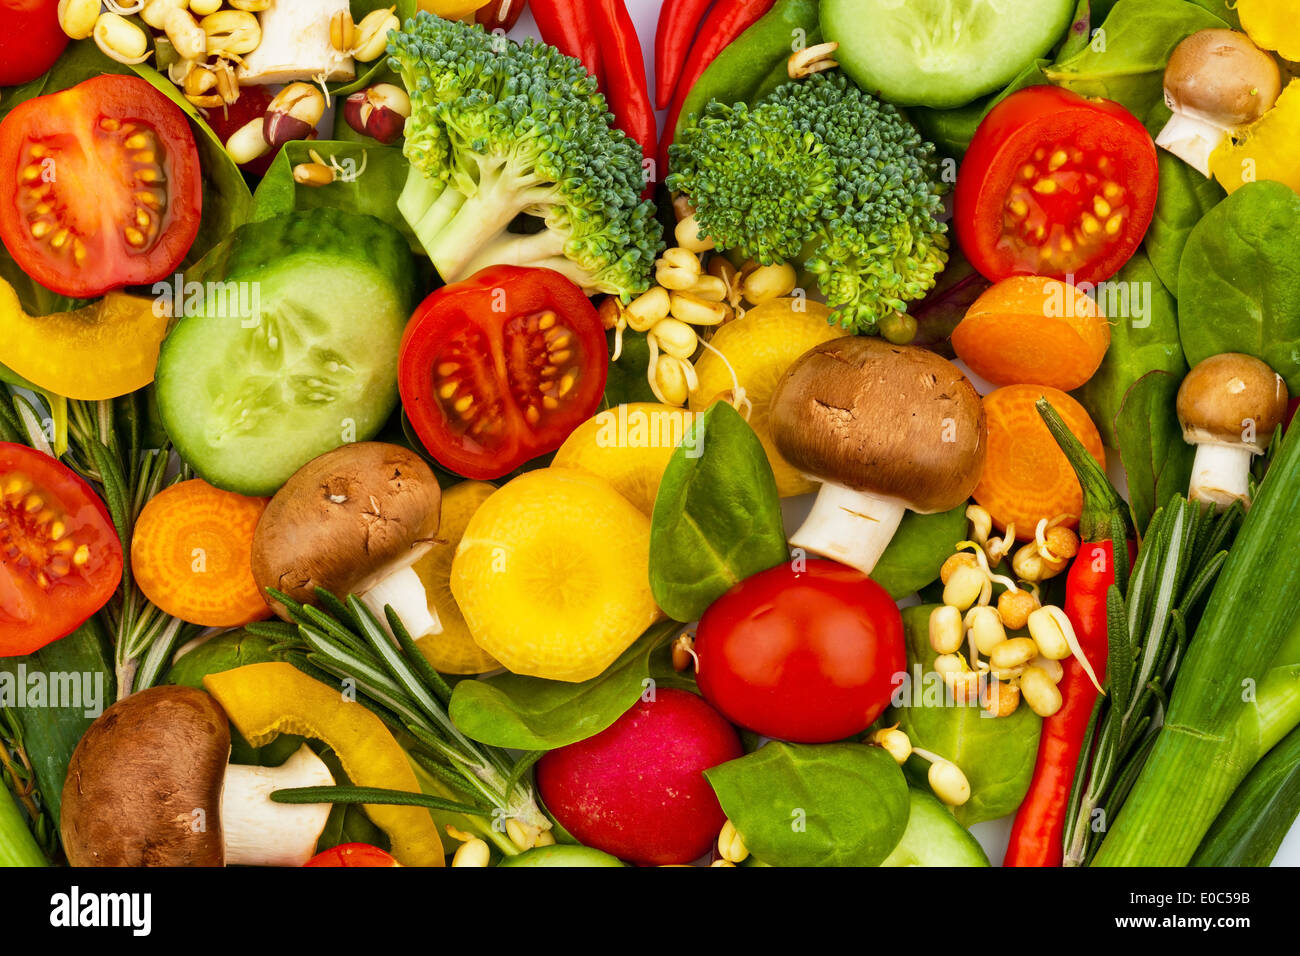 vegetarian diet is considered what in biology?